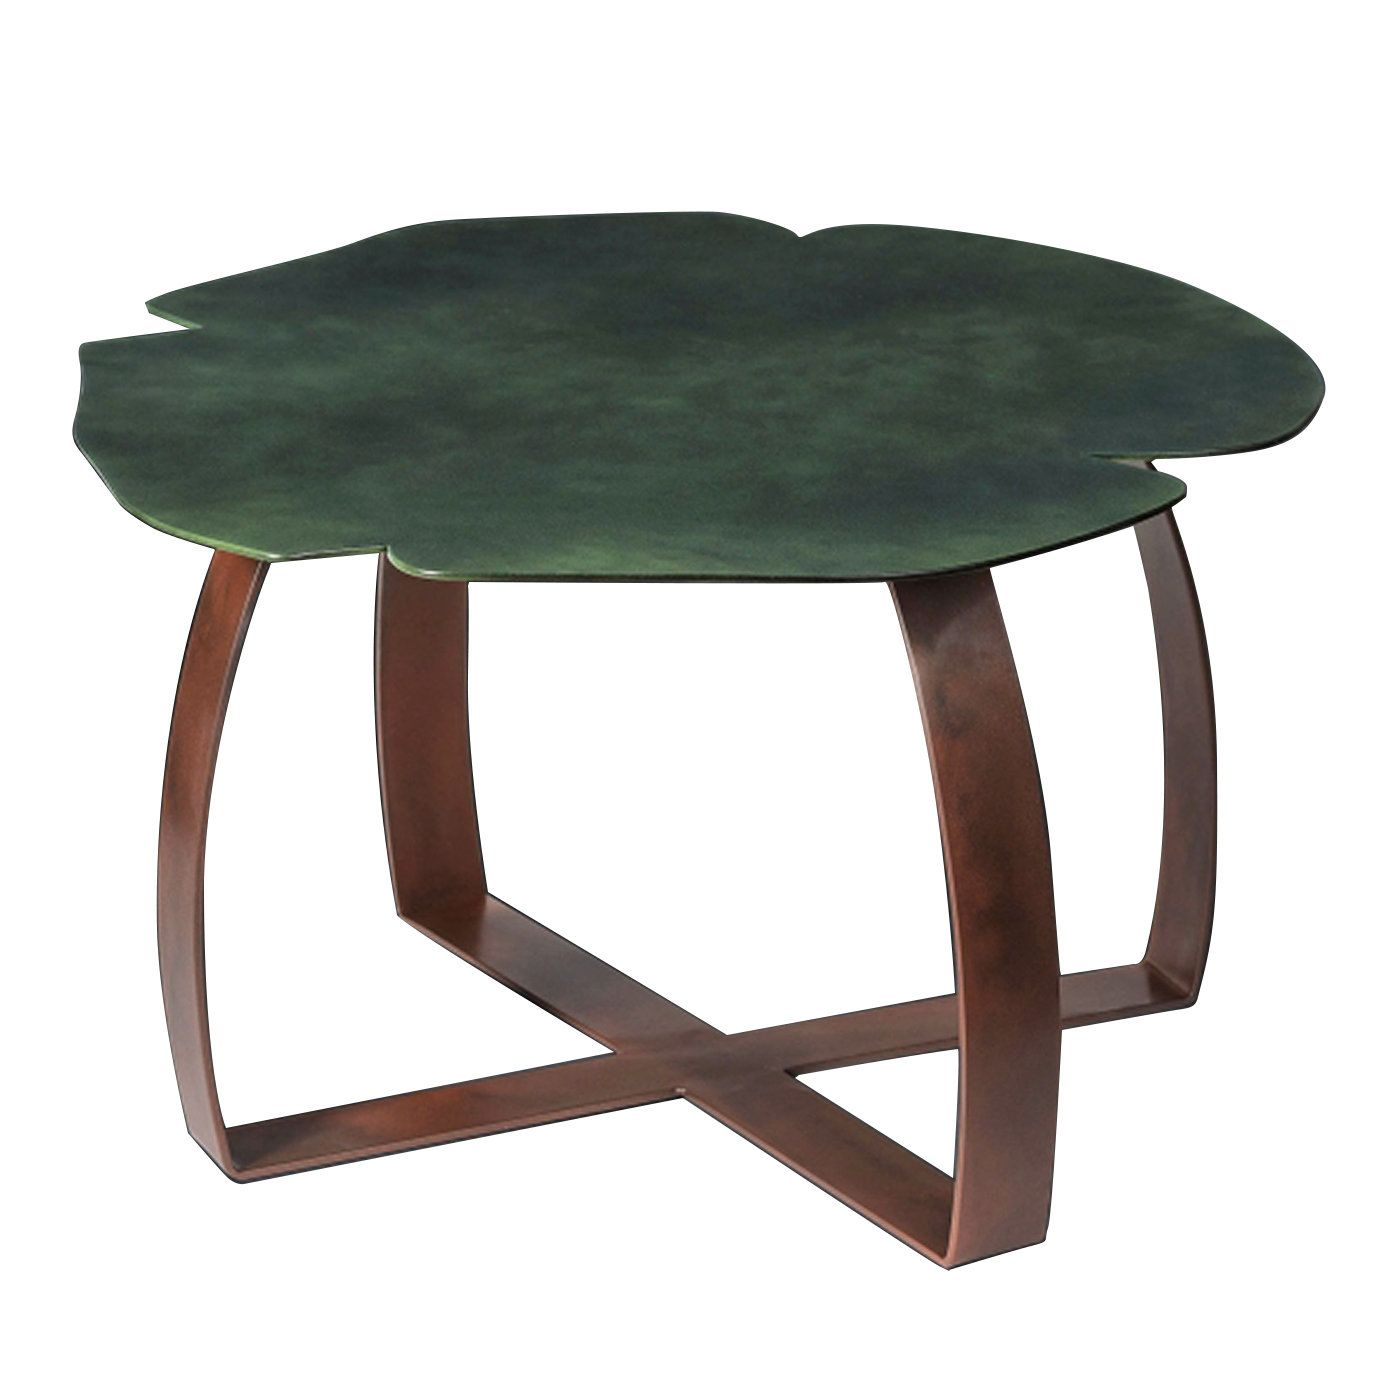 This industrial style coffee table is entirely made of iron and has